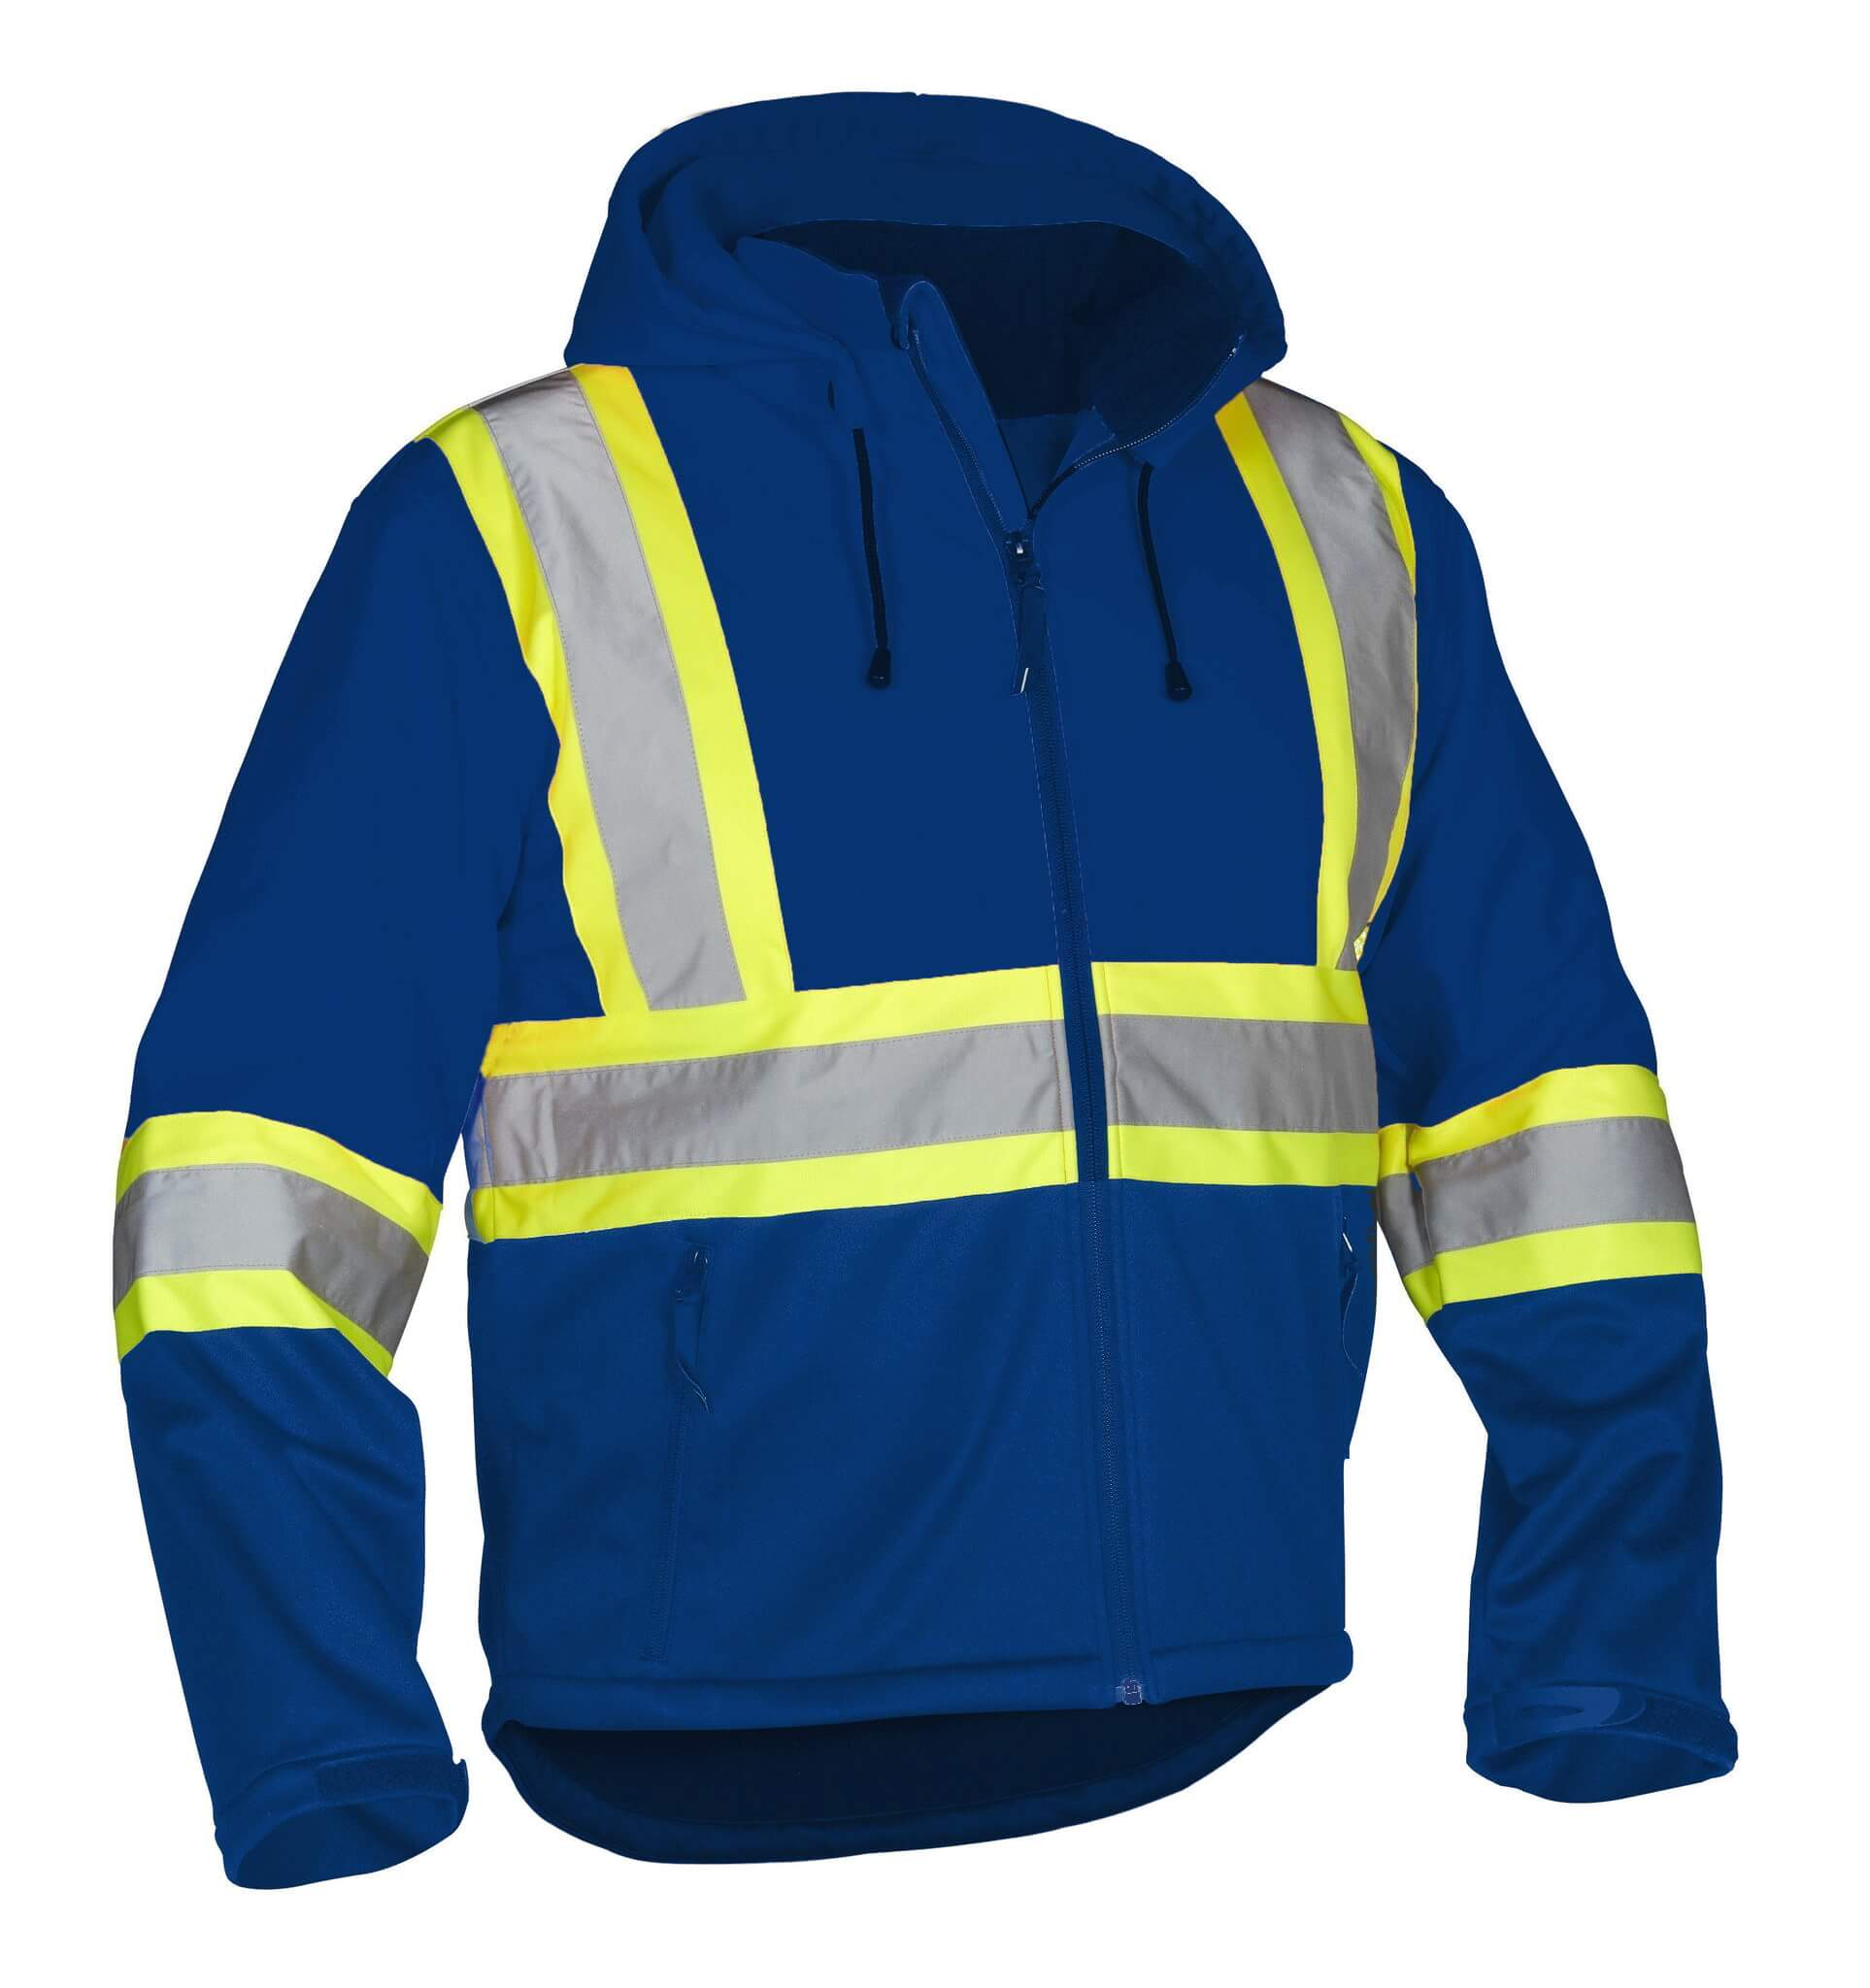 Forcefield Hi-Vis Safety Hoodie (Detachable Hood and Water R